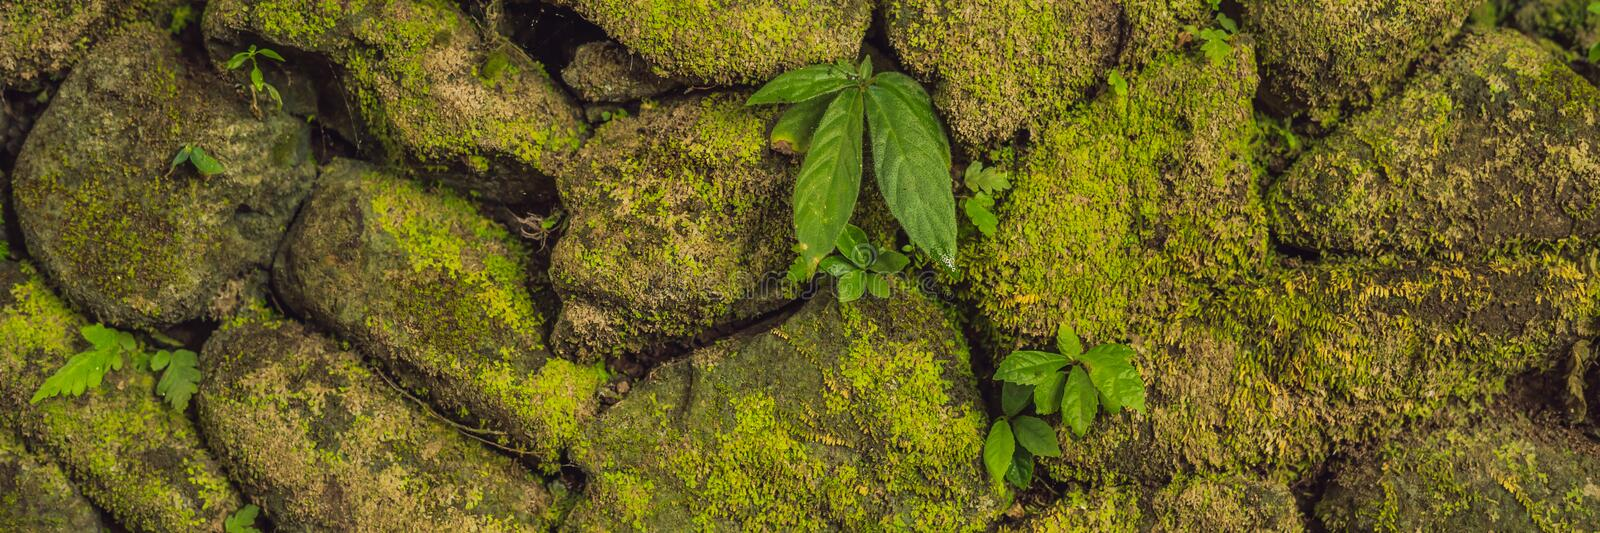 Texture of old stone wall covered green moss in Fort Rotterdam, Makassar - Indonesia BANNER, long format. Texture of old stone wall covered green moss in Fort royalty free stock image